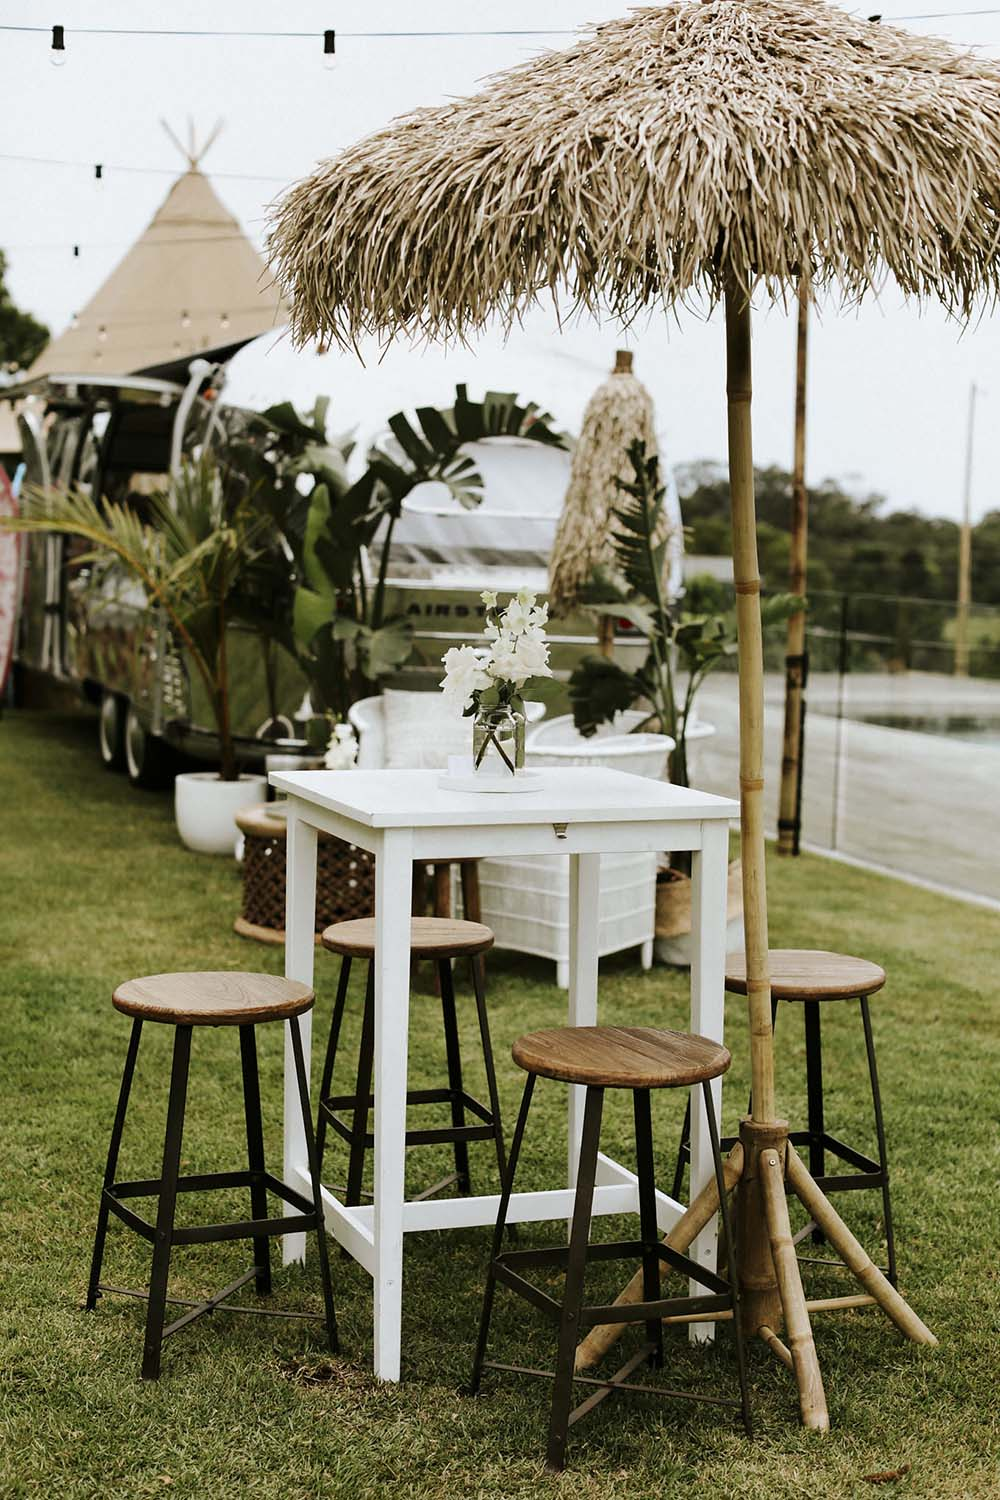 Lucie + Rory - Byron Bay Wedding Venue | The Events Lounge - Byron Bay Wedding Planning and Styling - www.theeventslounge.com.au